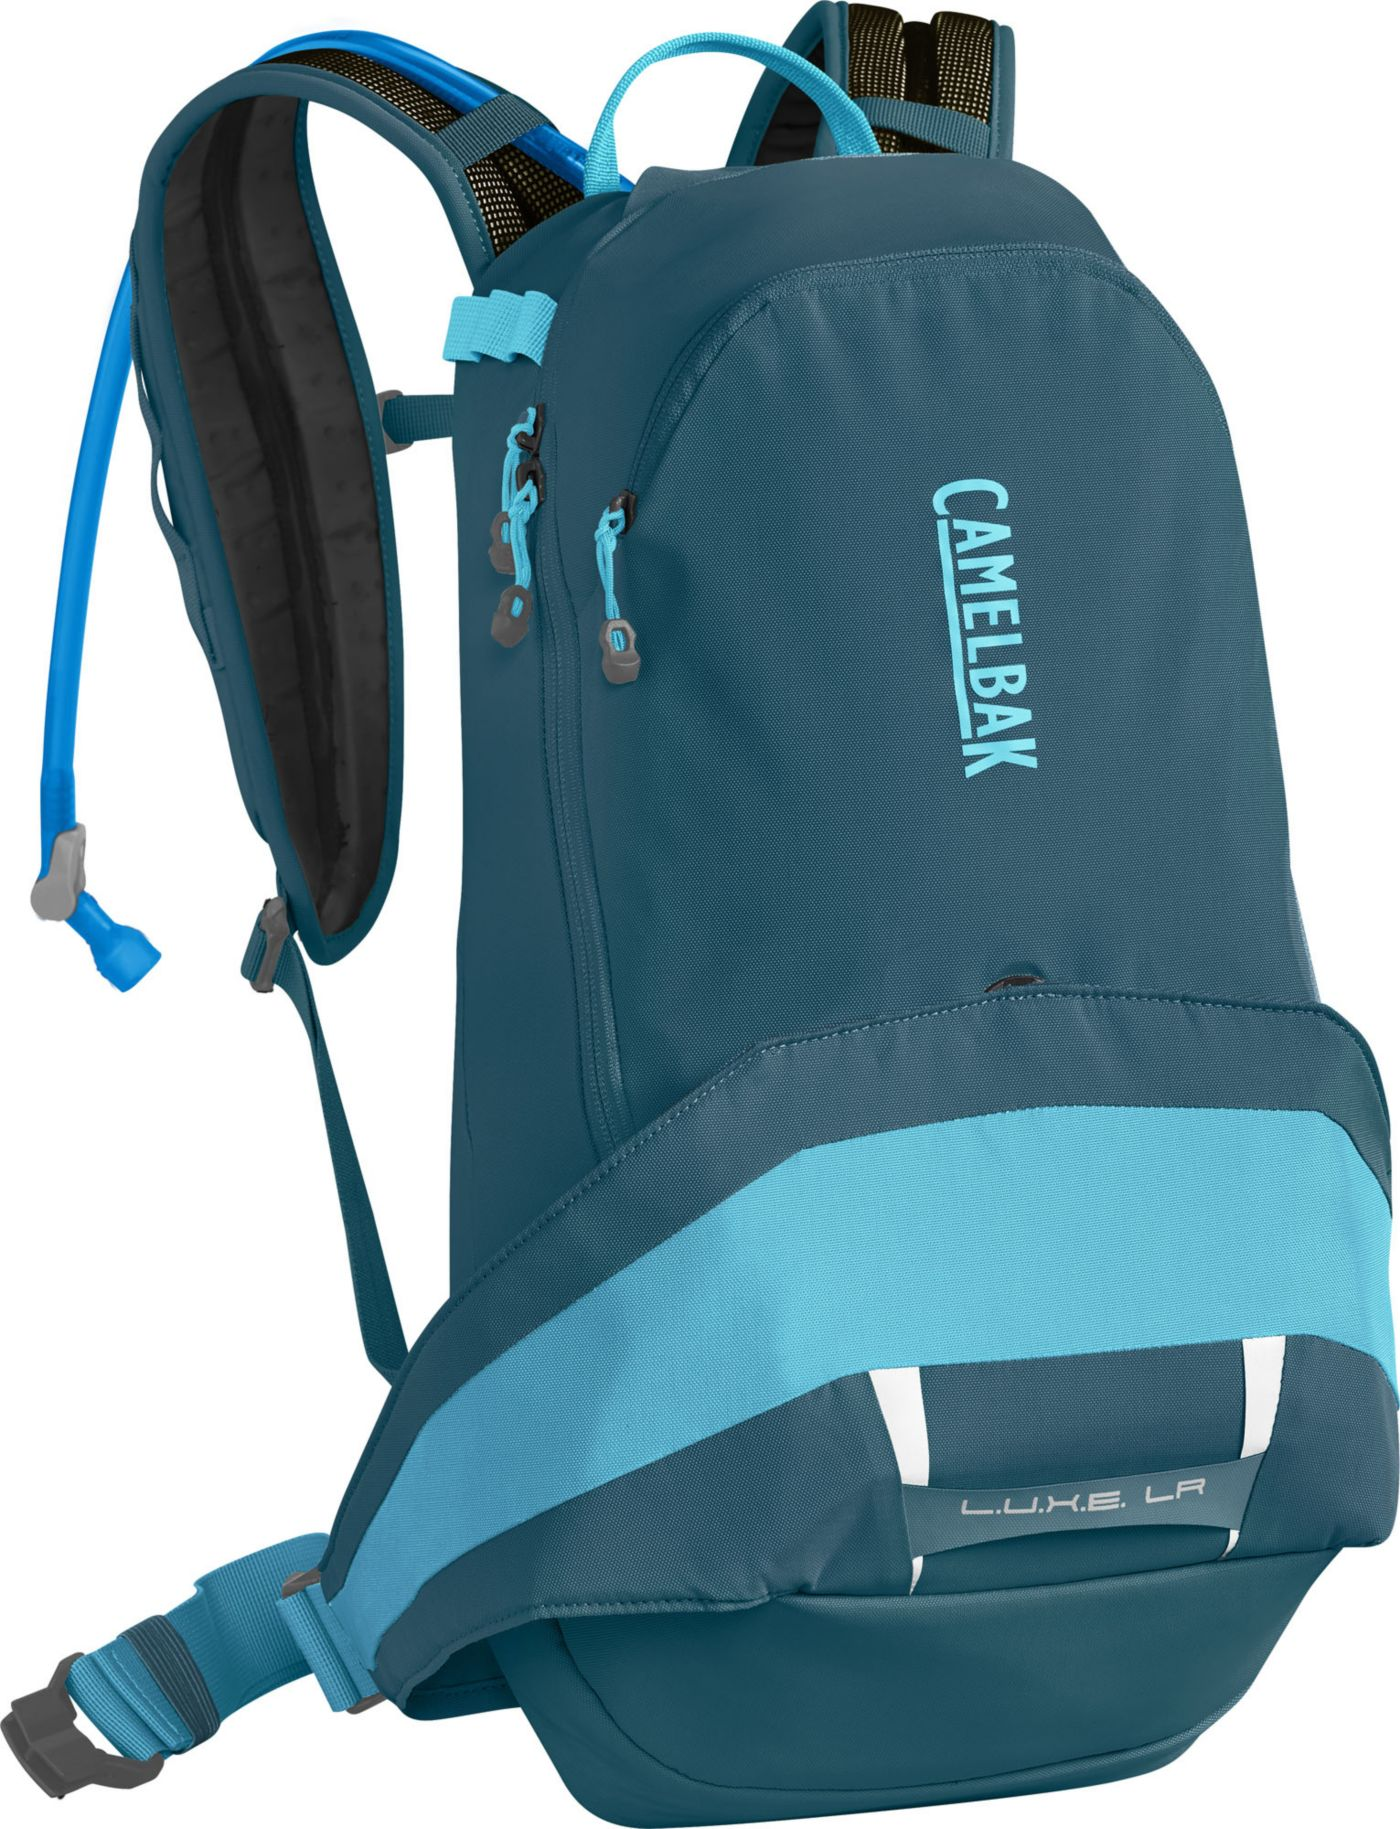 CamelBak Women's L.U.X.E. LR 14 100 oz. Hydration Pack